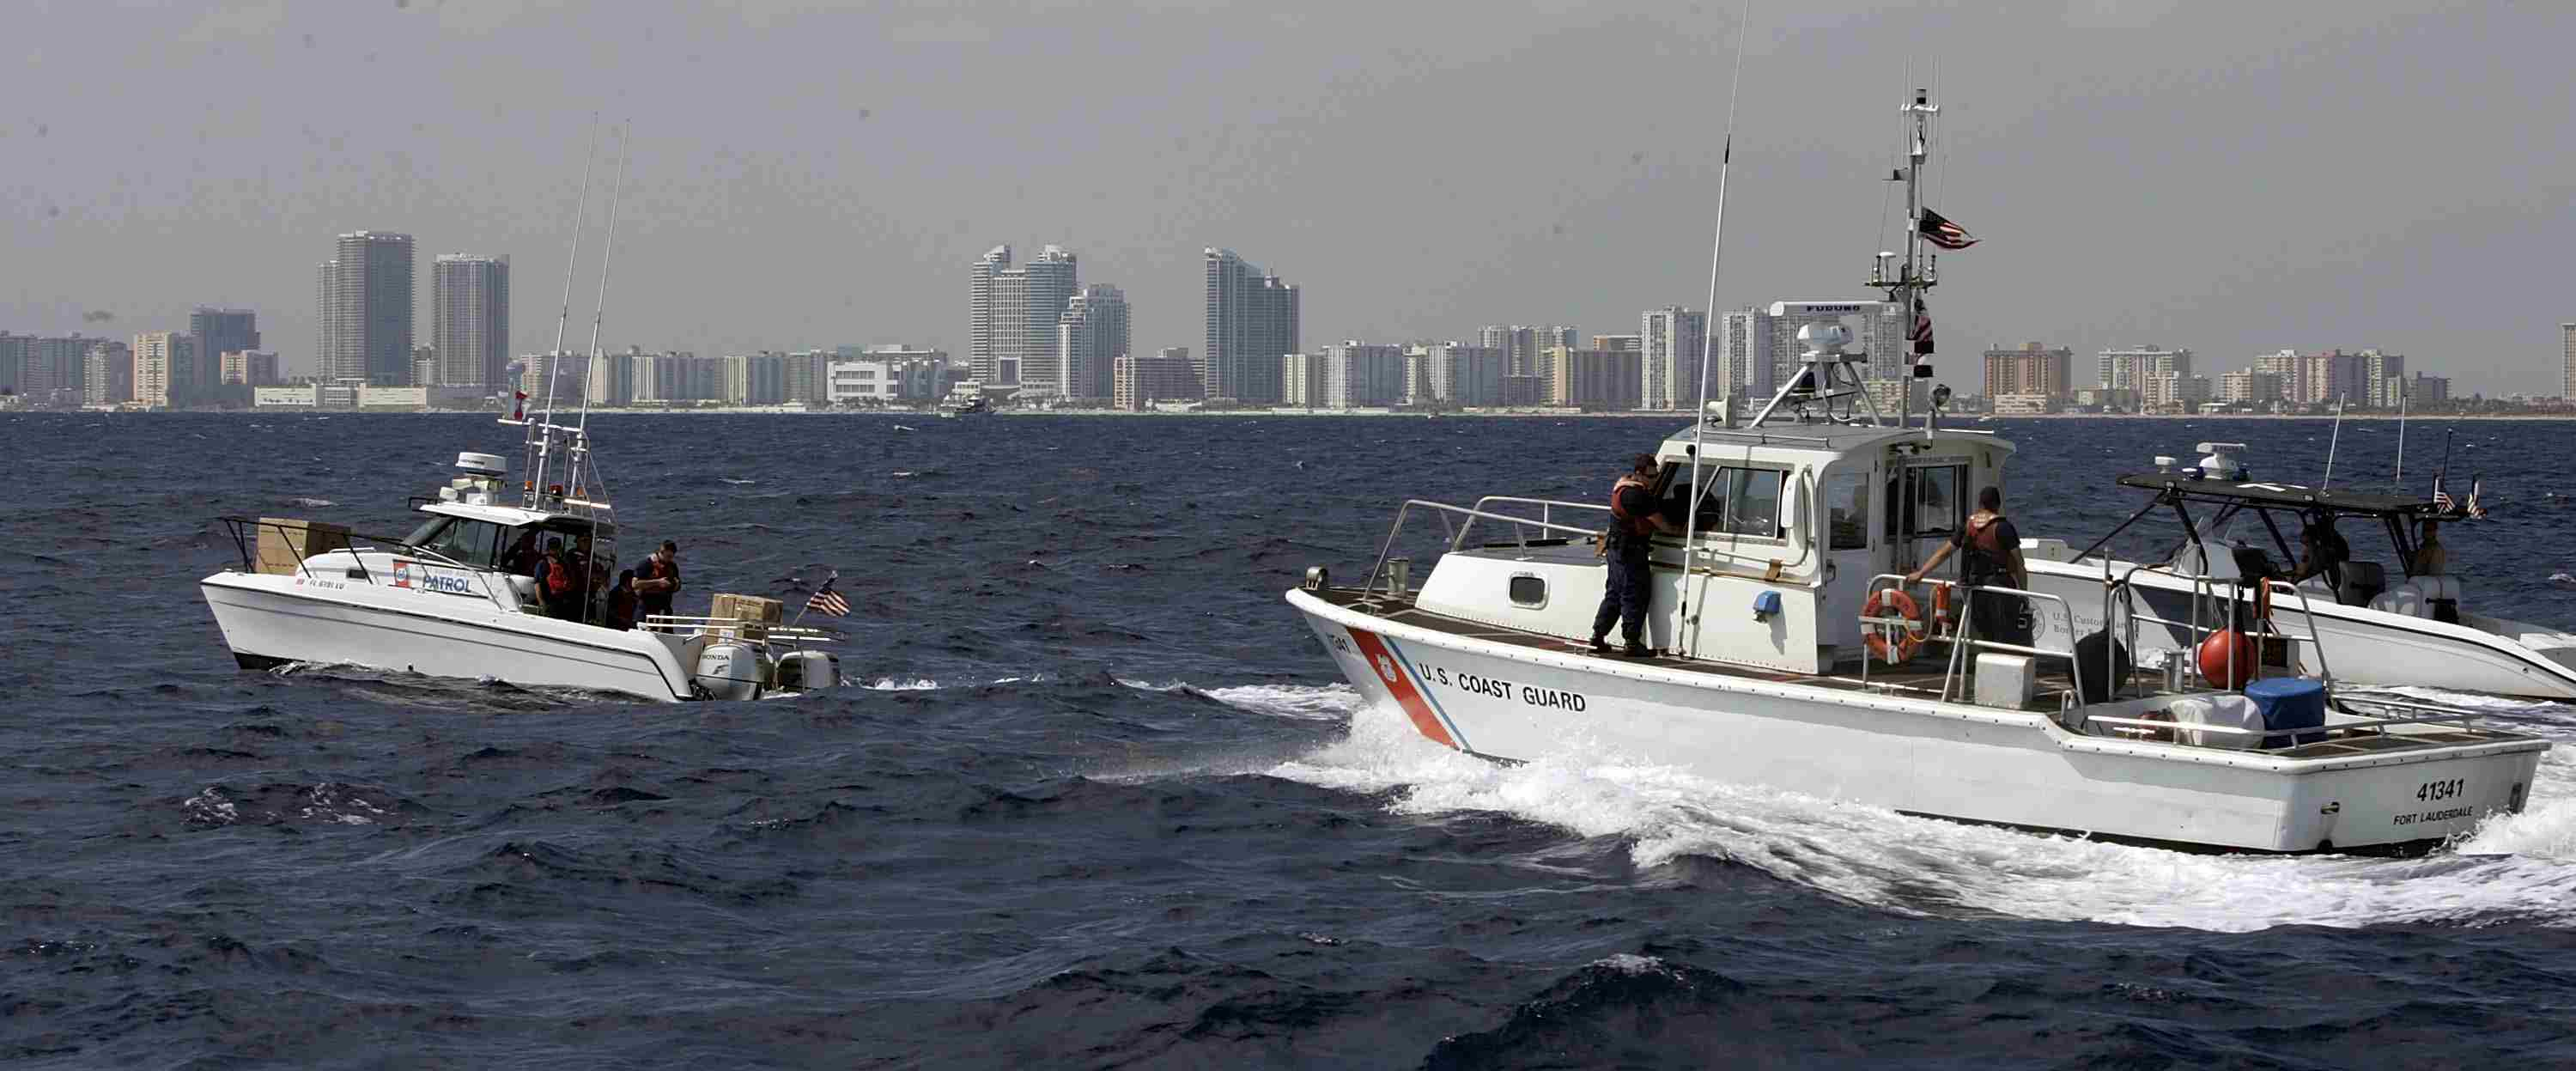 Coast Guard boats in action